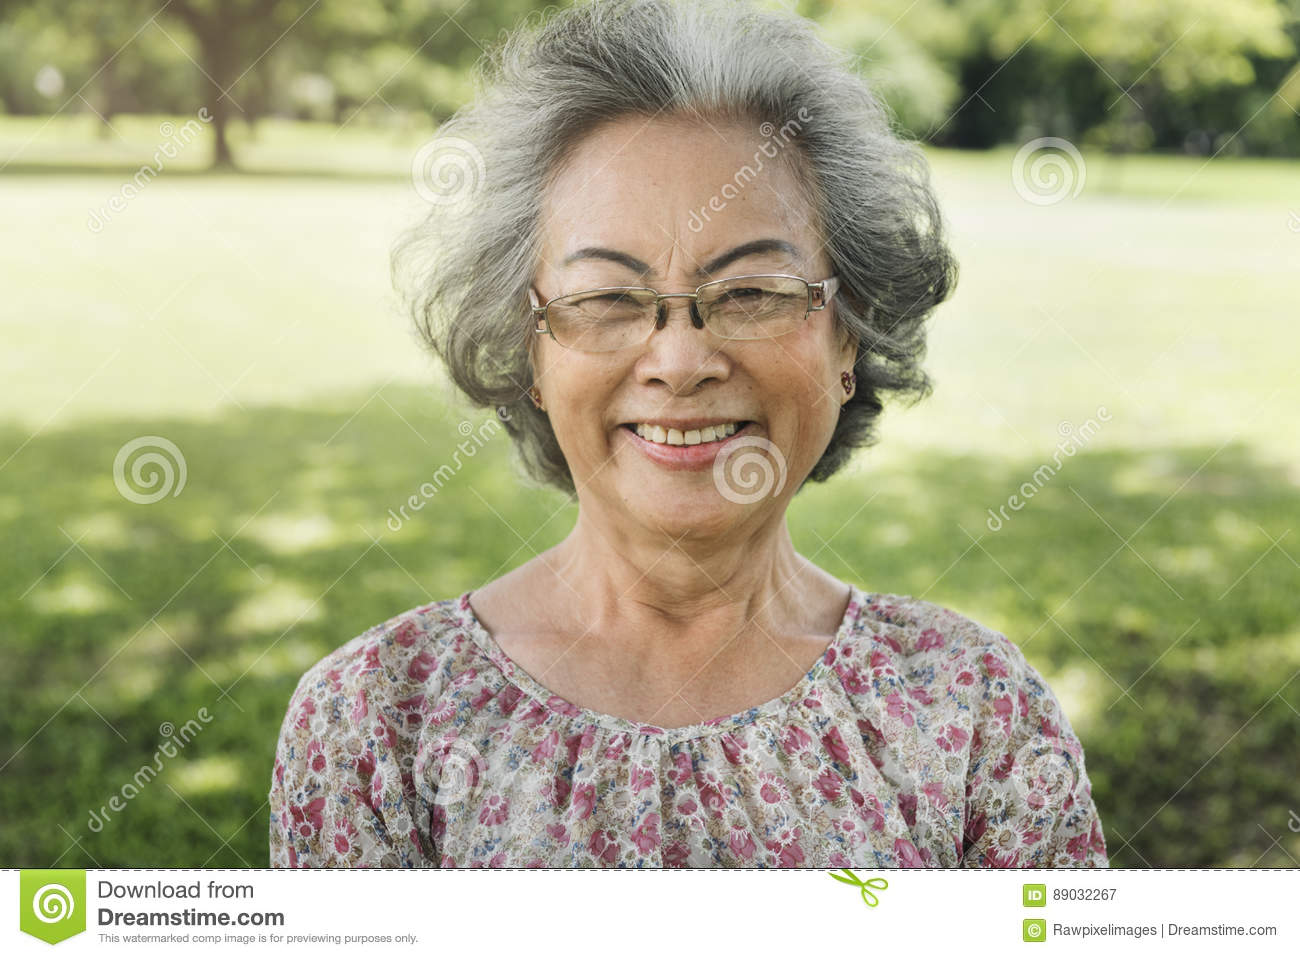 Asian Senior Woman Smiling Lifestyle Happiness Concept